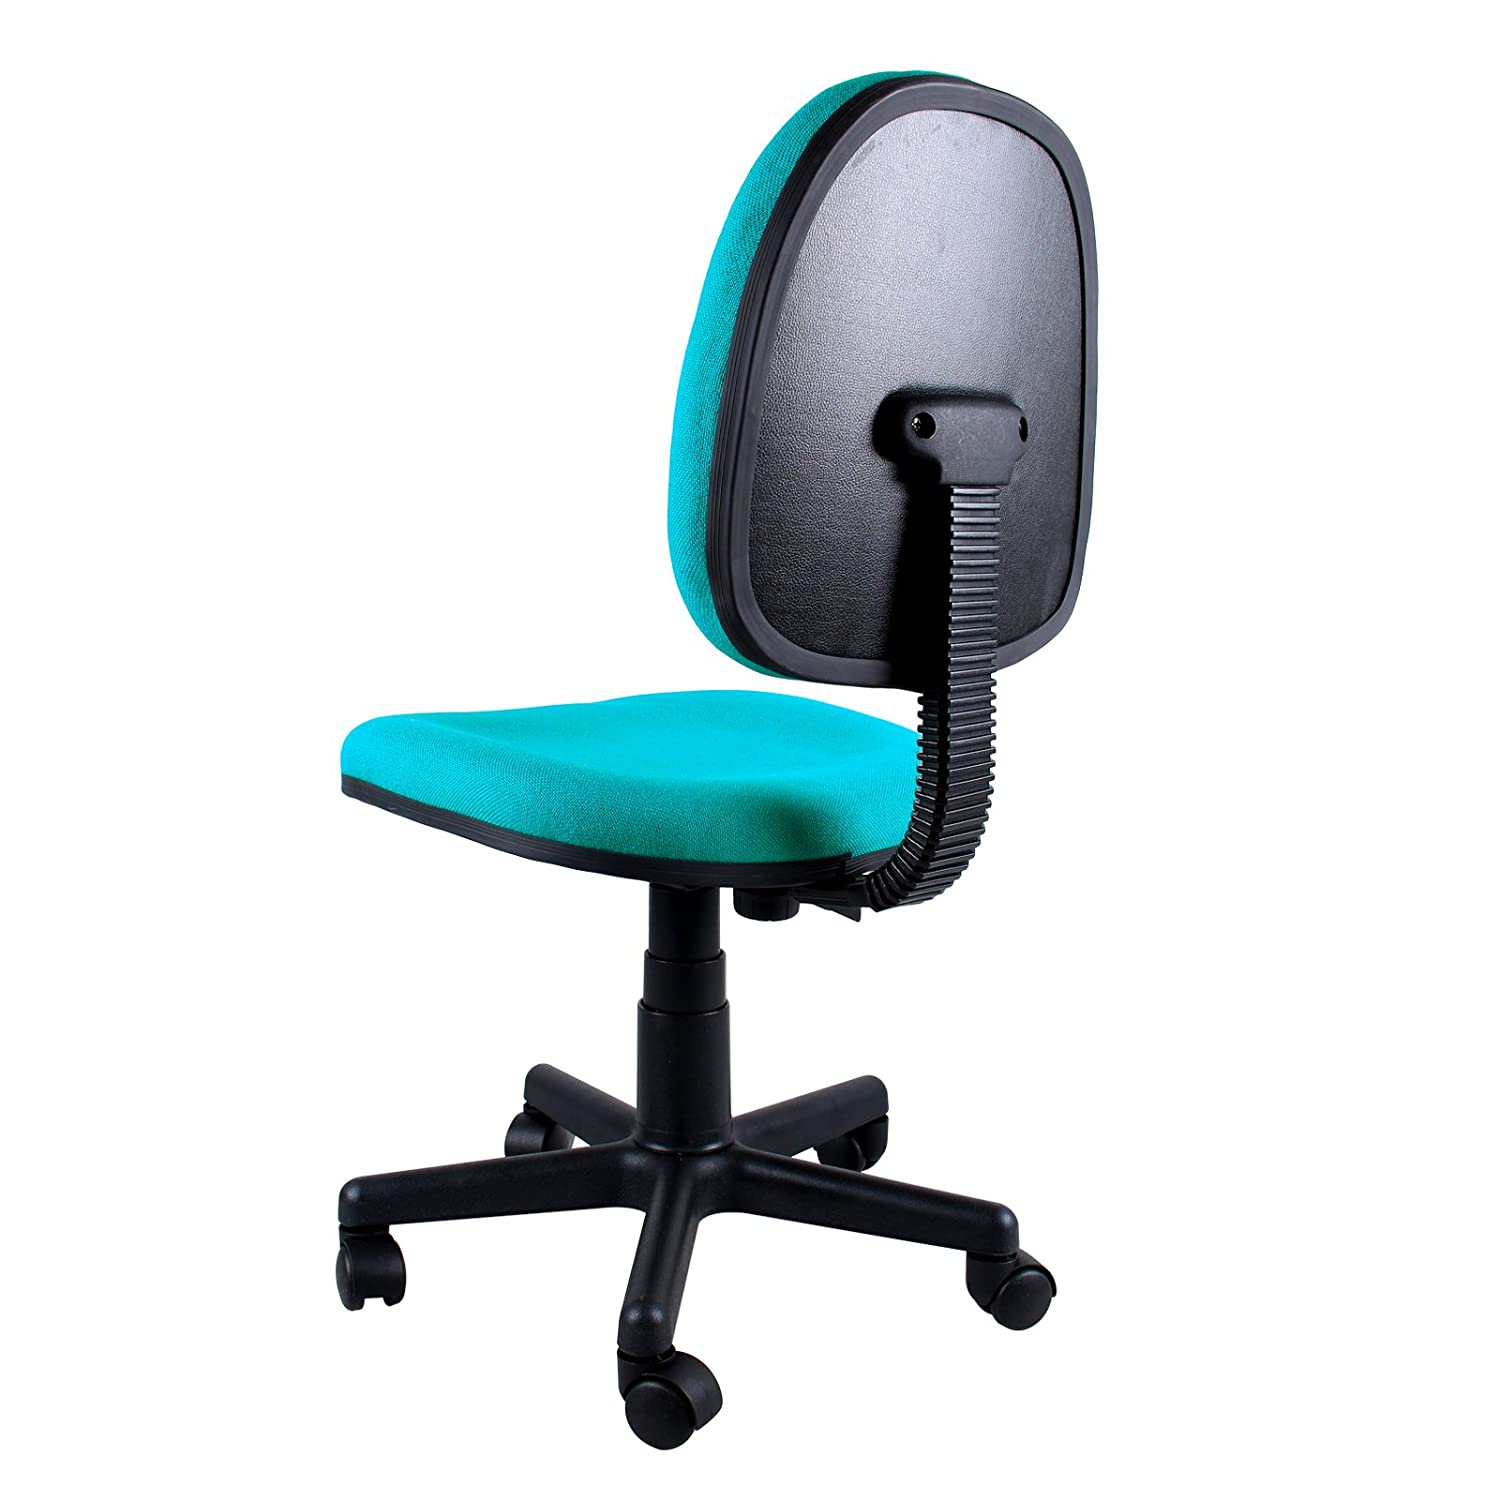 Computer chairs on sale or clearance - Amazon Com Clearance Emall Life Mid Back Desk Chair 360 Adjustable Swivel Office Chair Armless Fabric Task Chair Aquamarine Kitchen Dining